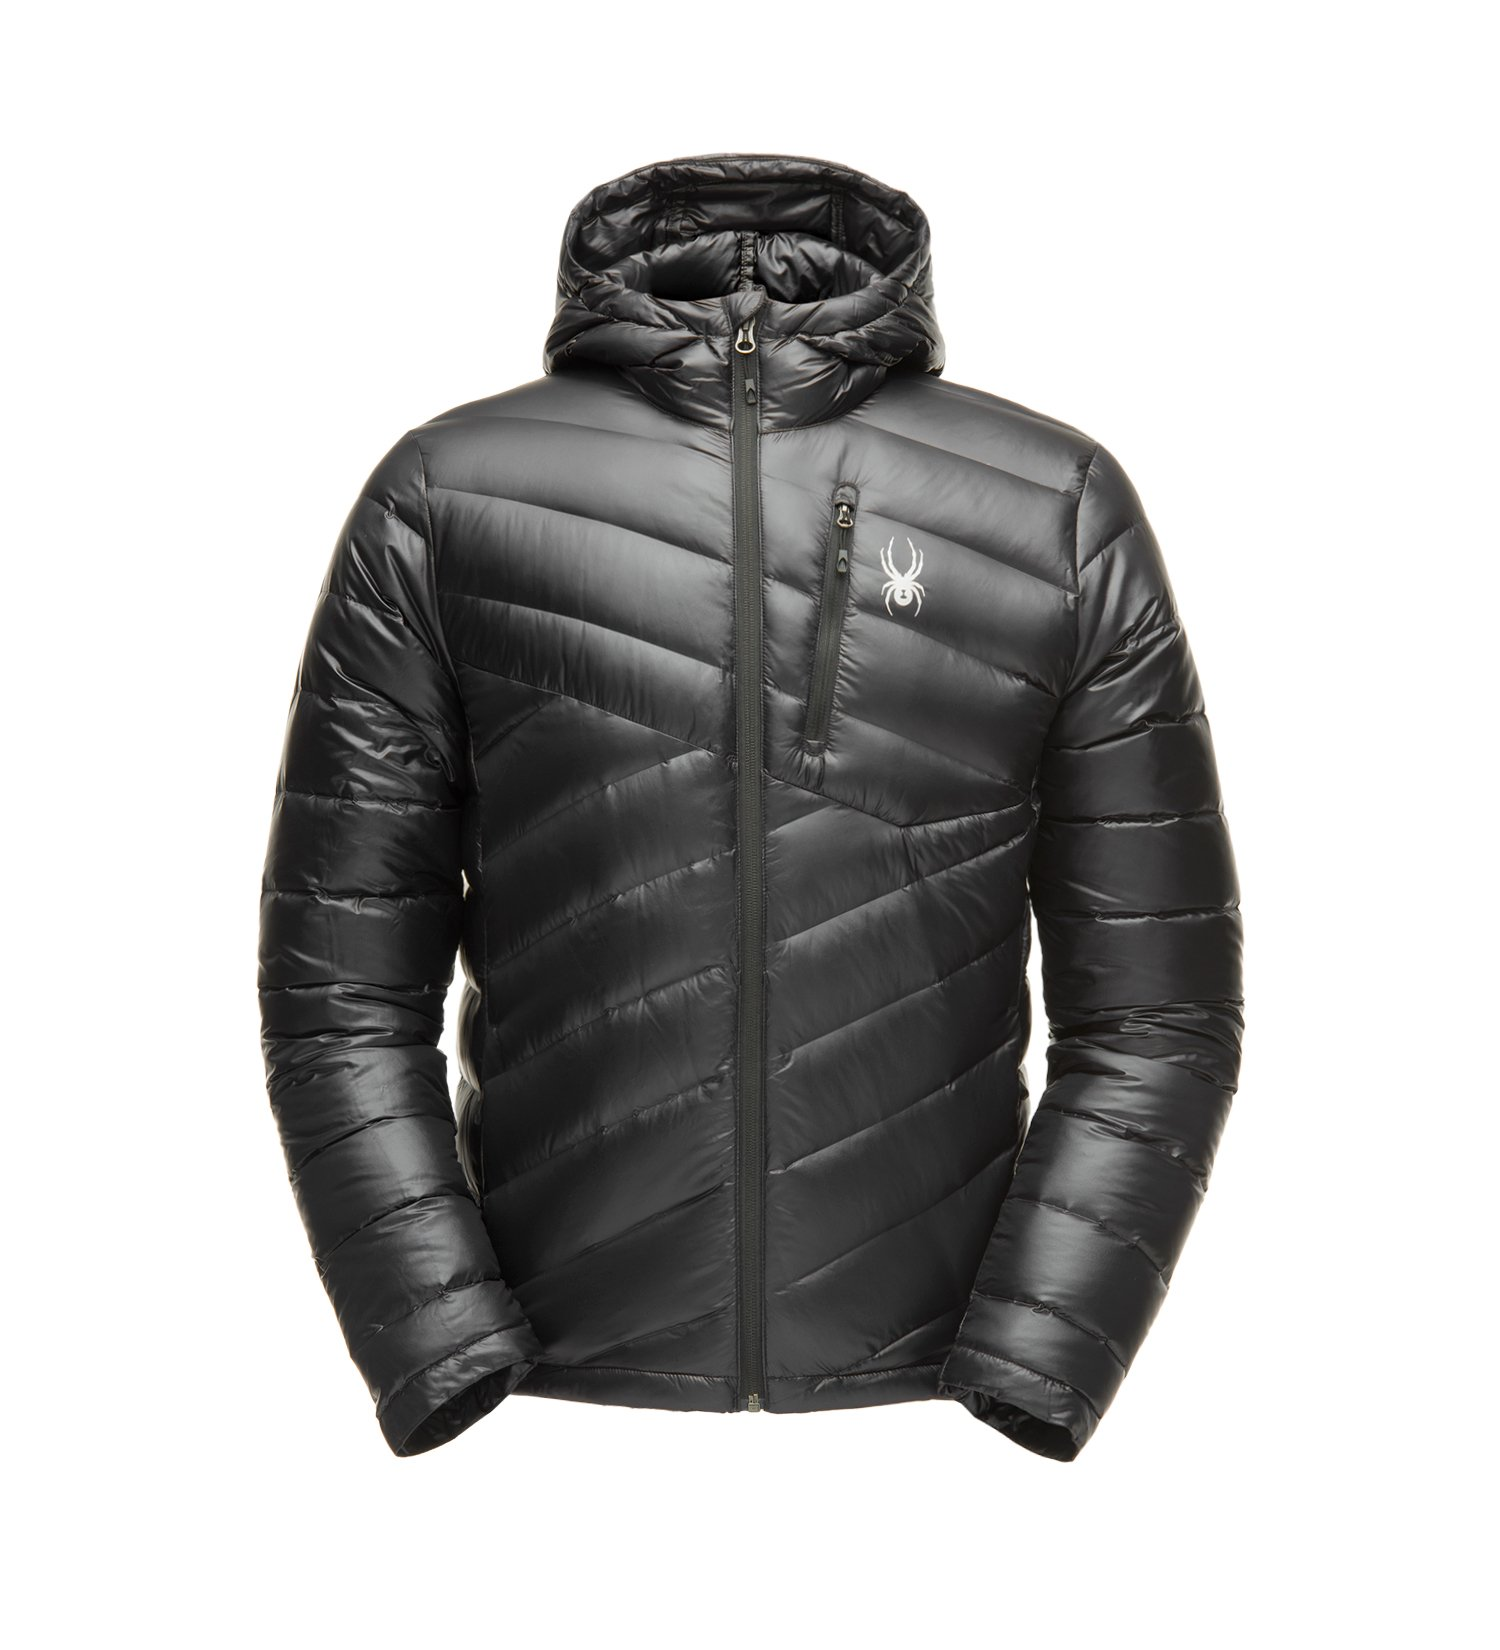 Spyder Syrround Hoody Down Jacket